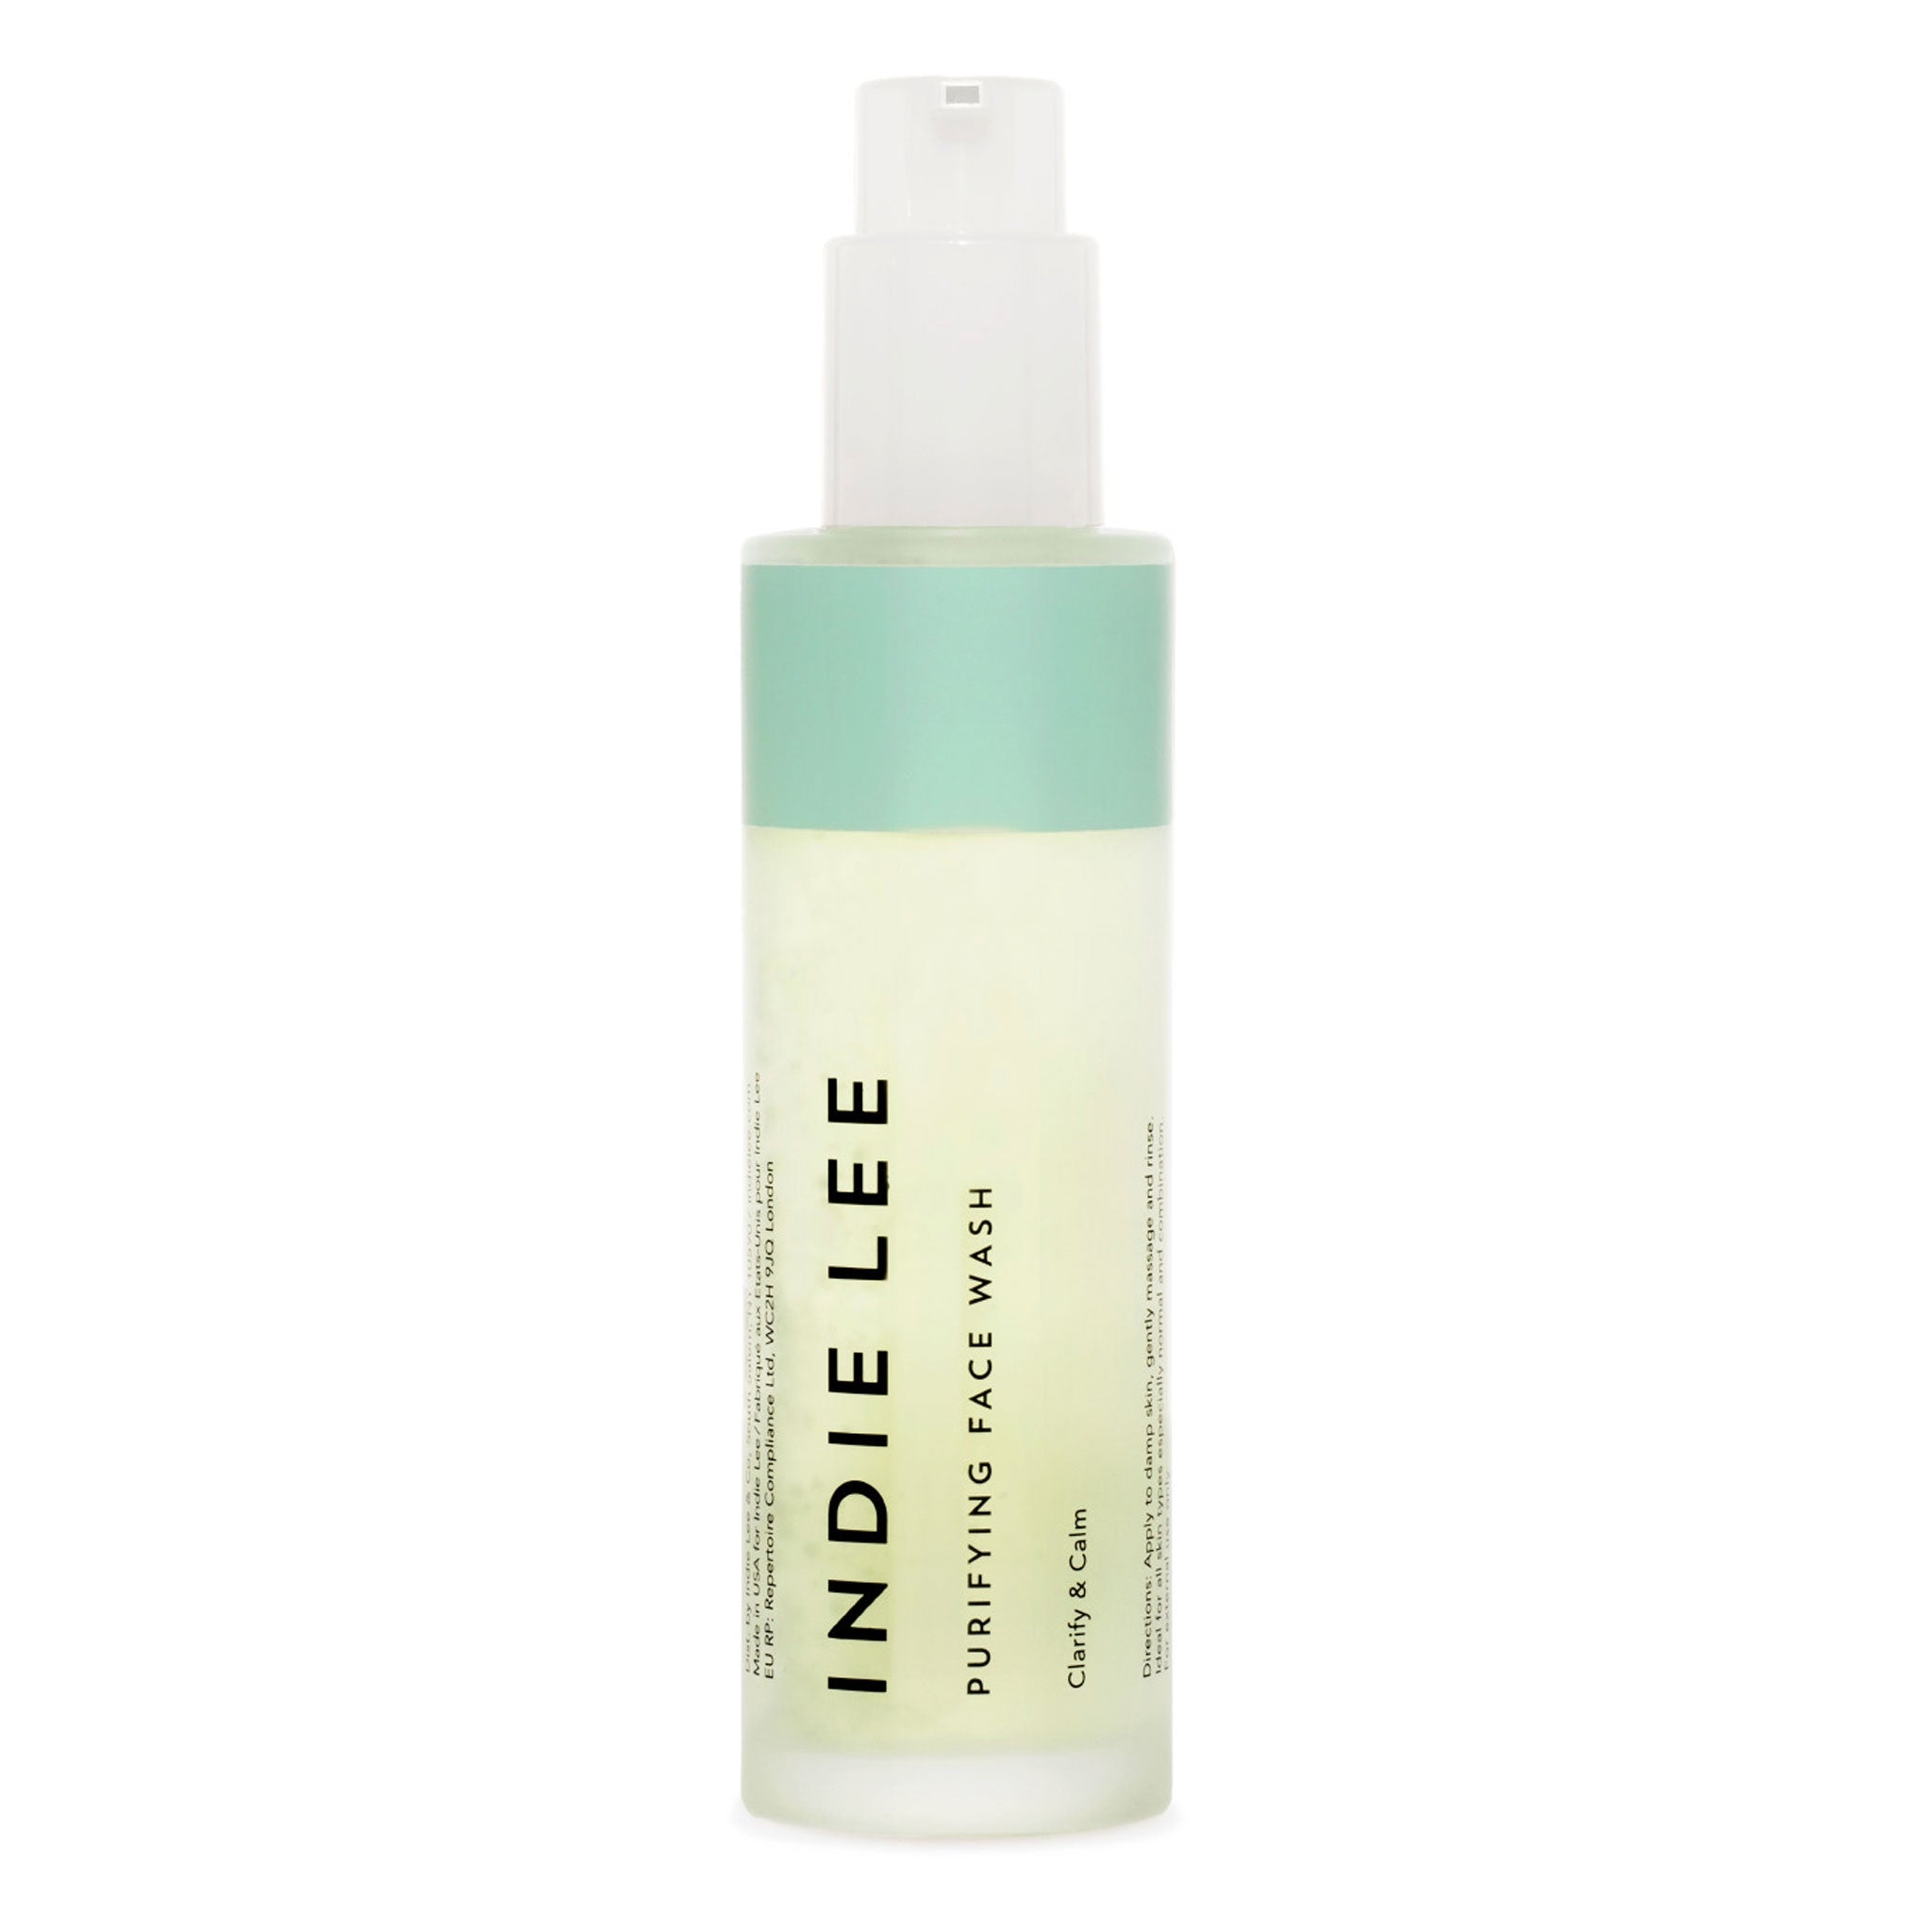 Purifying Face Wash by Indie Lee #5